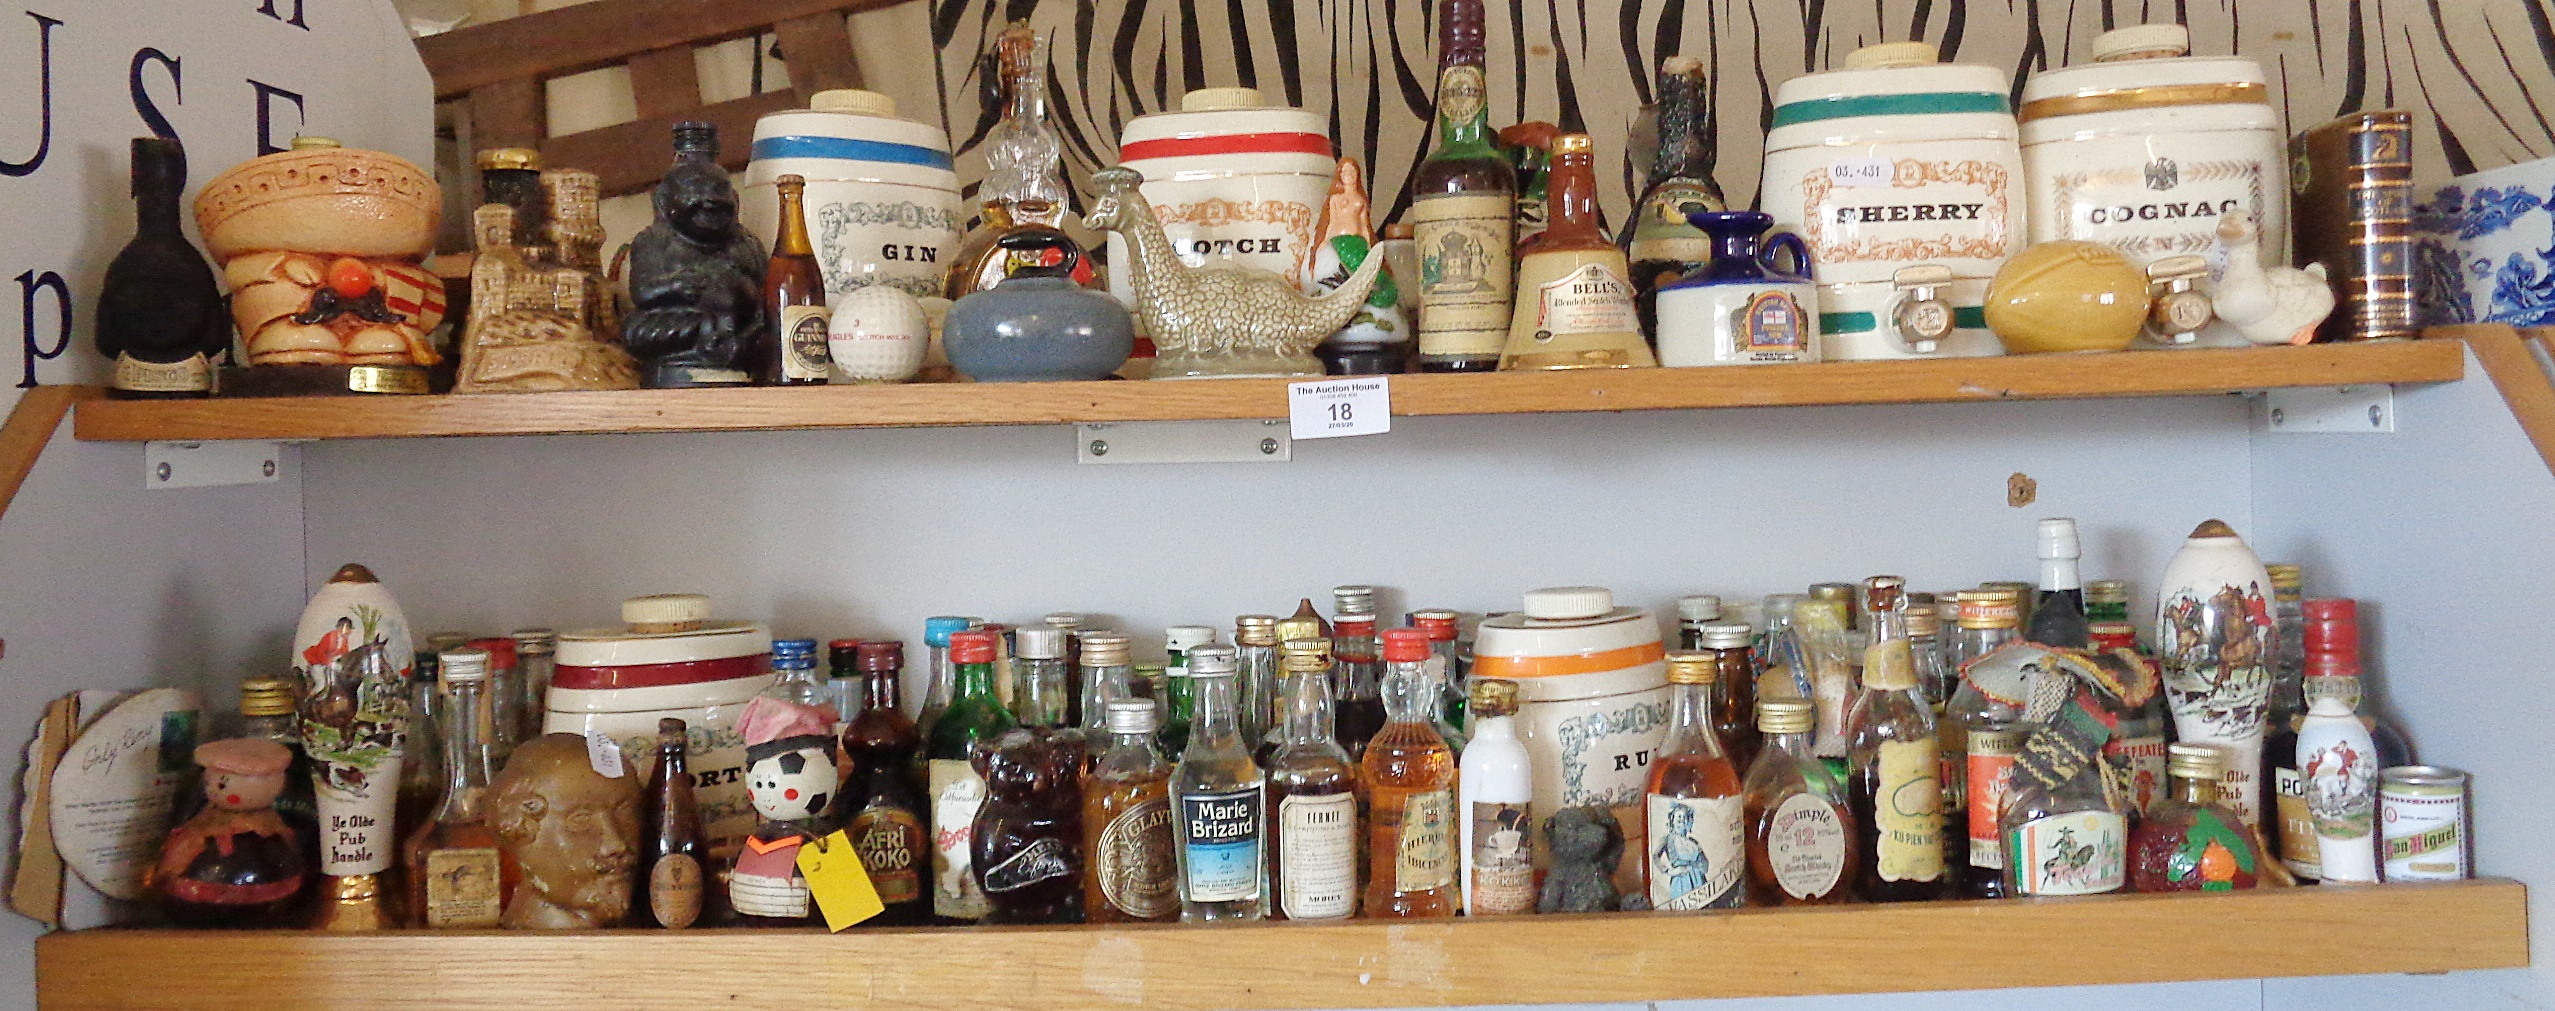 Lot 18 - Large collection of spirit and miniature bottles (2 shelves)